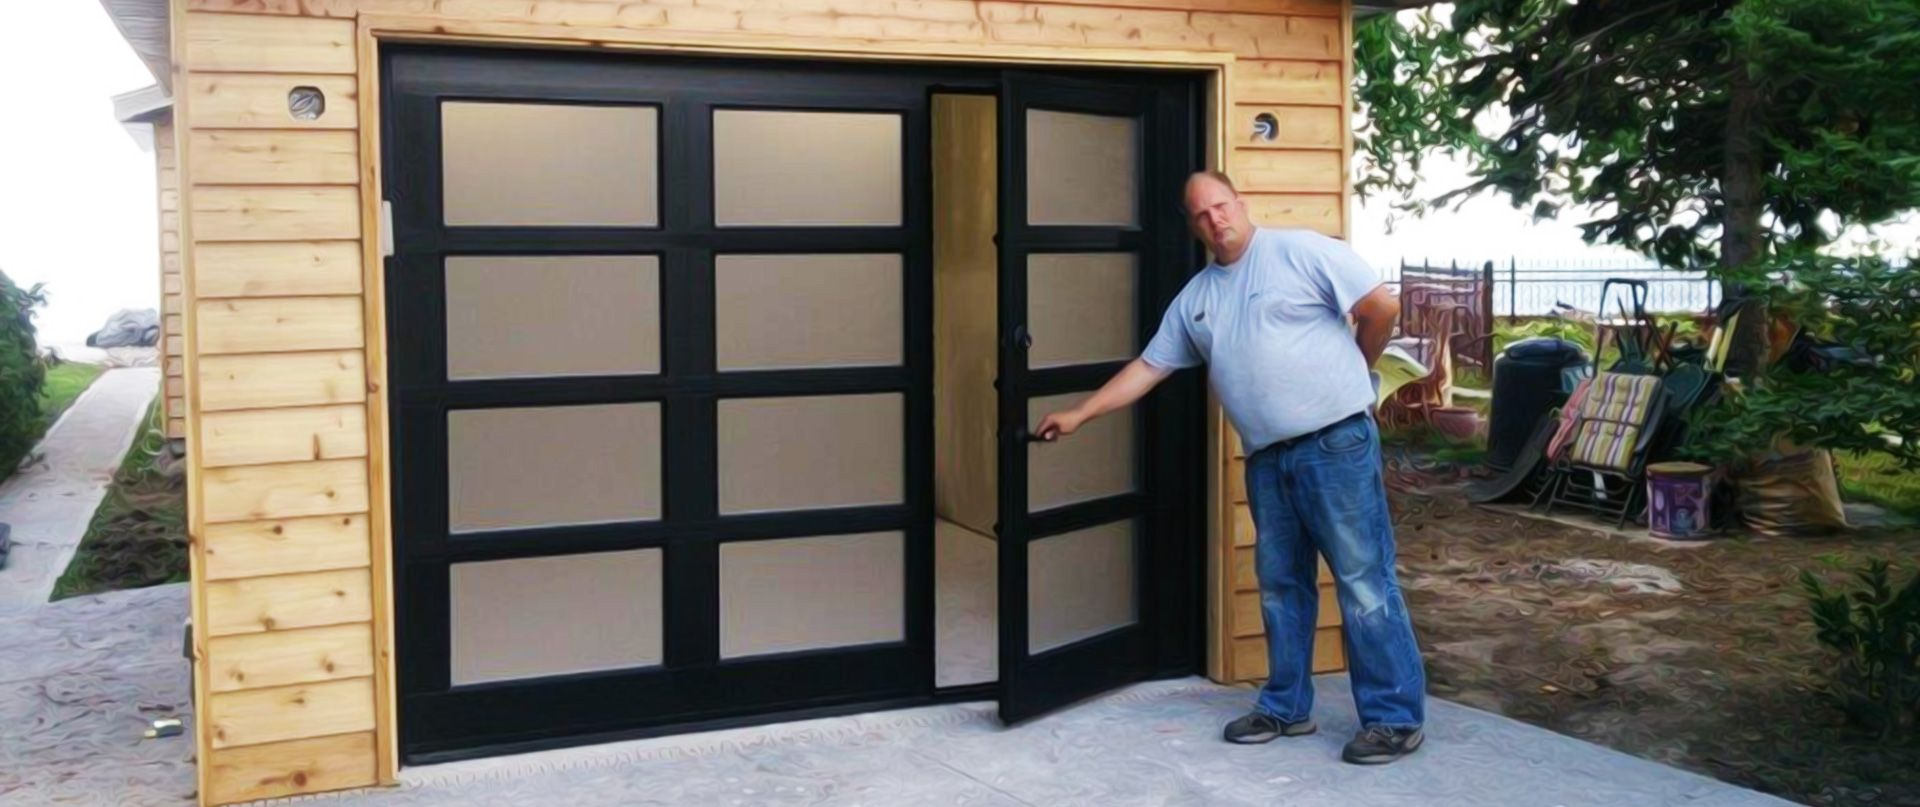 Walkthru Garage Doors Garage Door Design Garage Doors Glass Garage Door